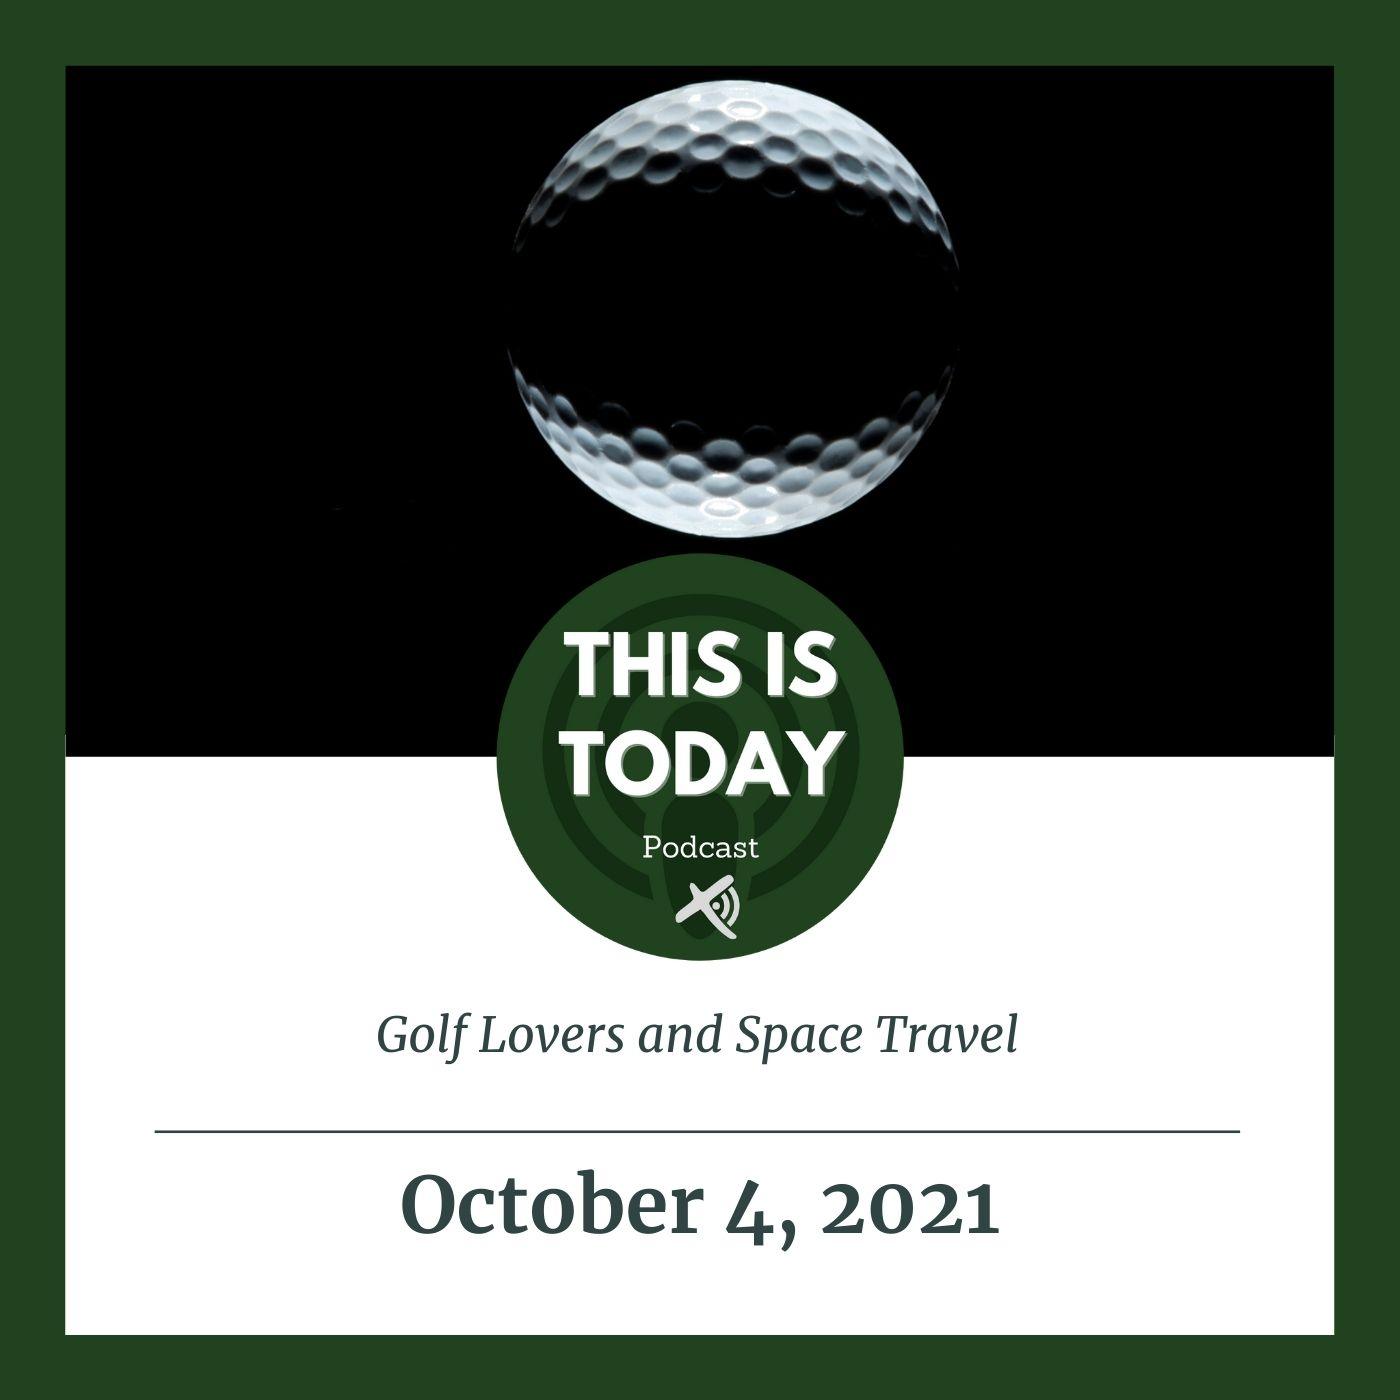 Golf Lovers and Space Travel